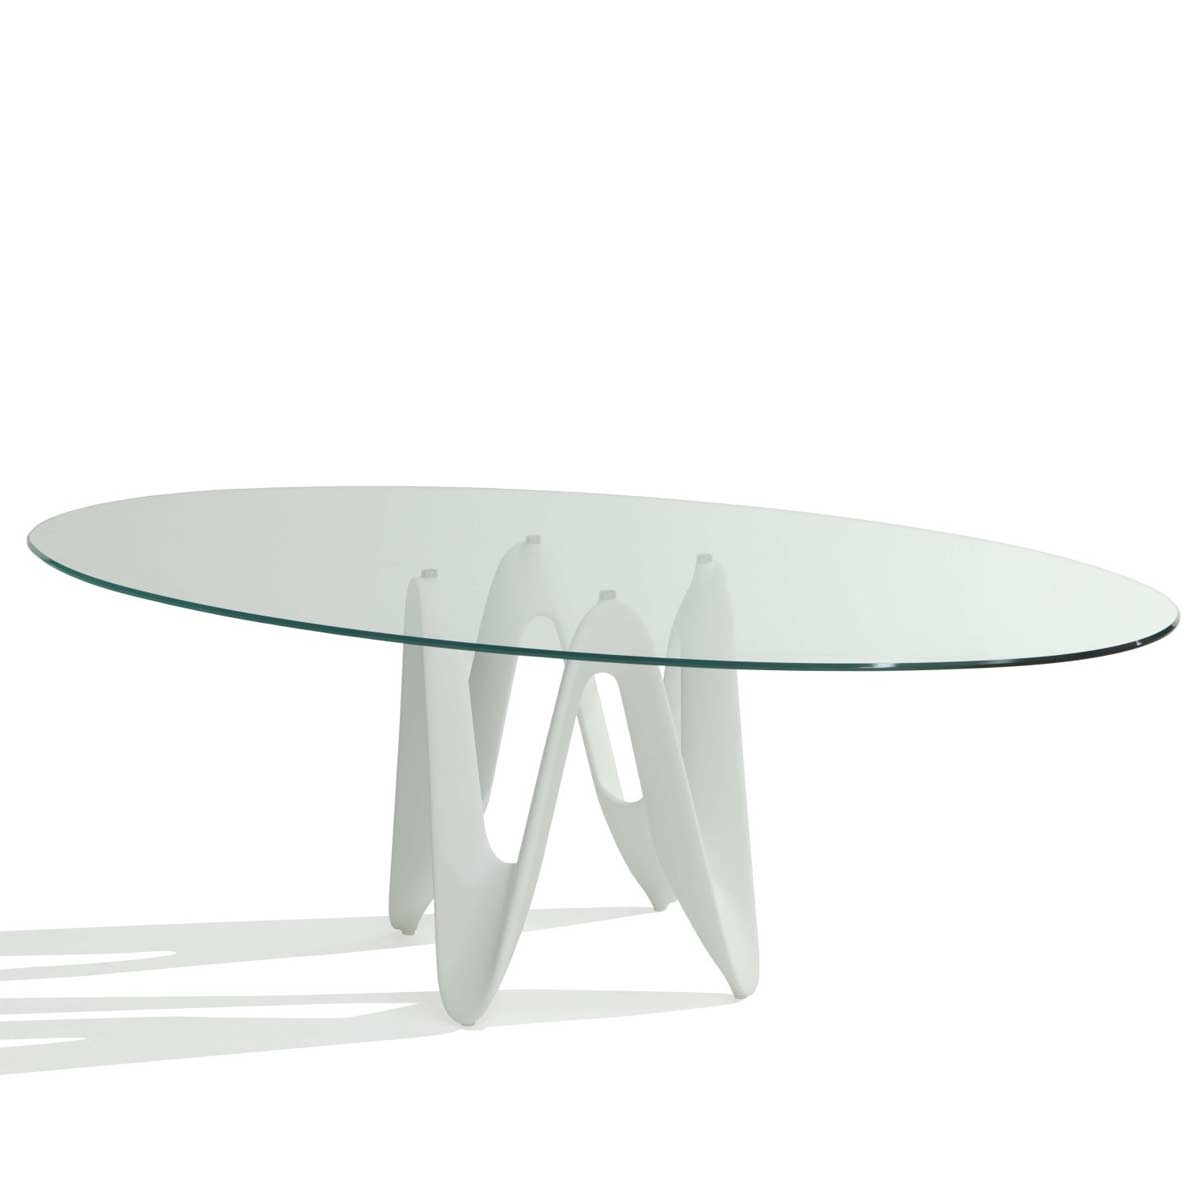 Oval Glass Dining Table round glass dining table with metal base